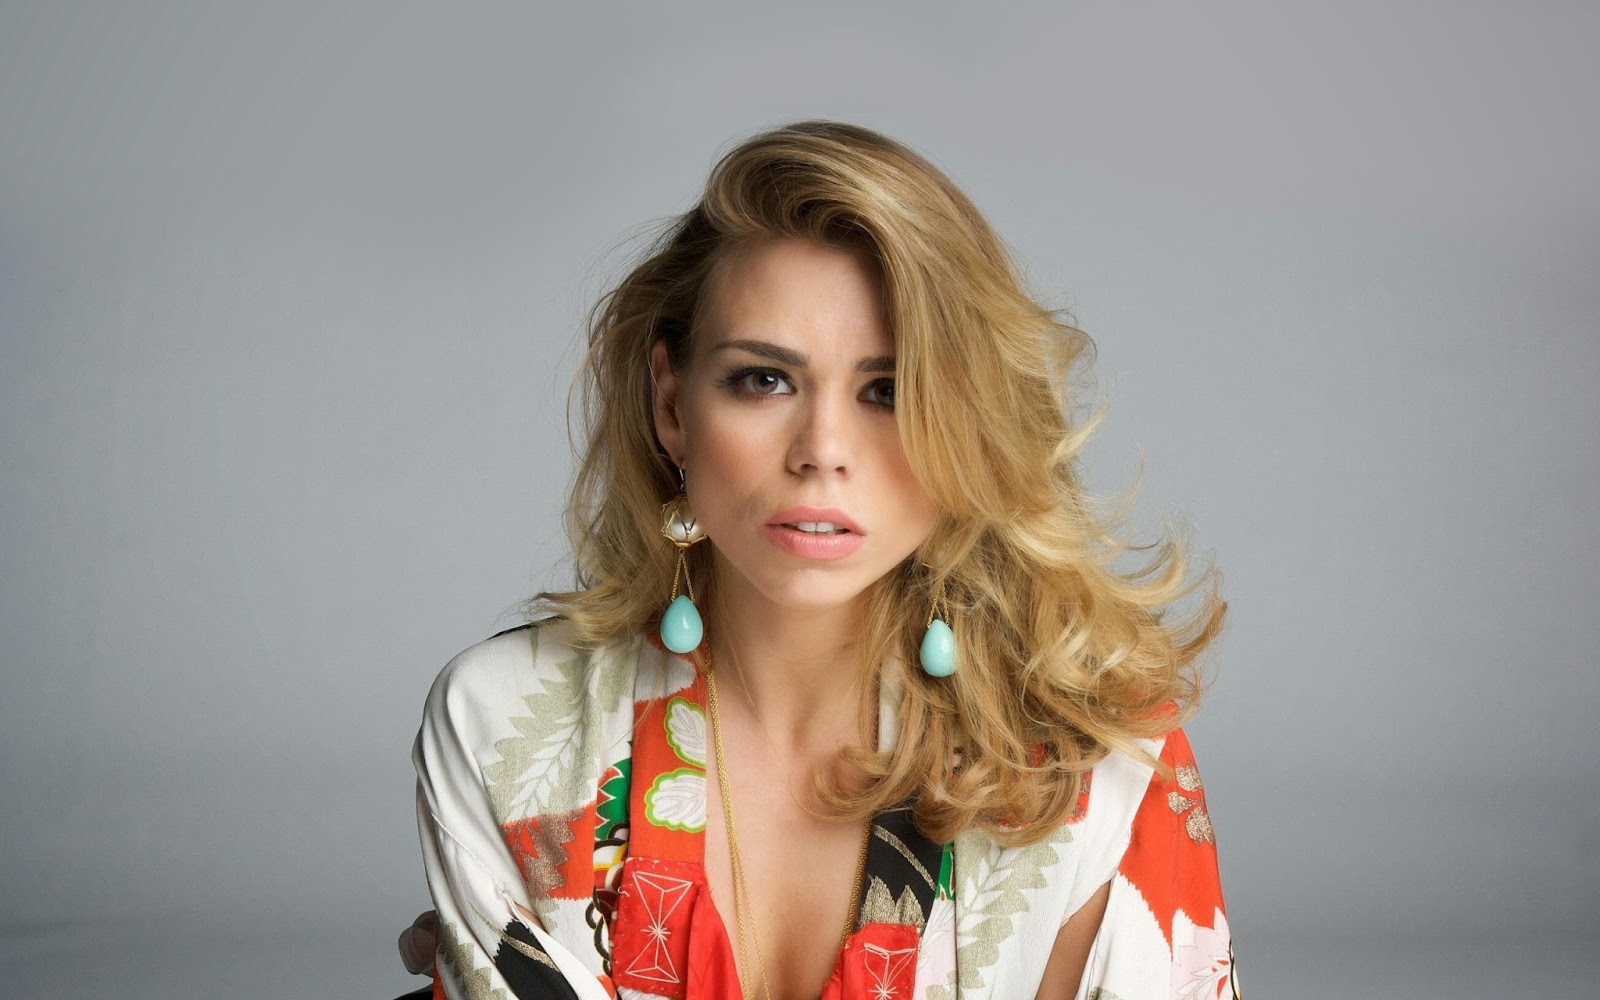 Hollywood Actress Wallpaper: Billie Piper Wallpapers Free ...